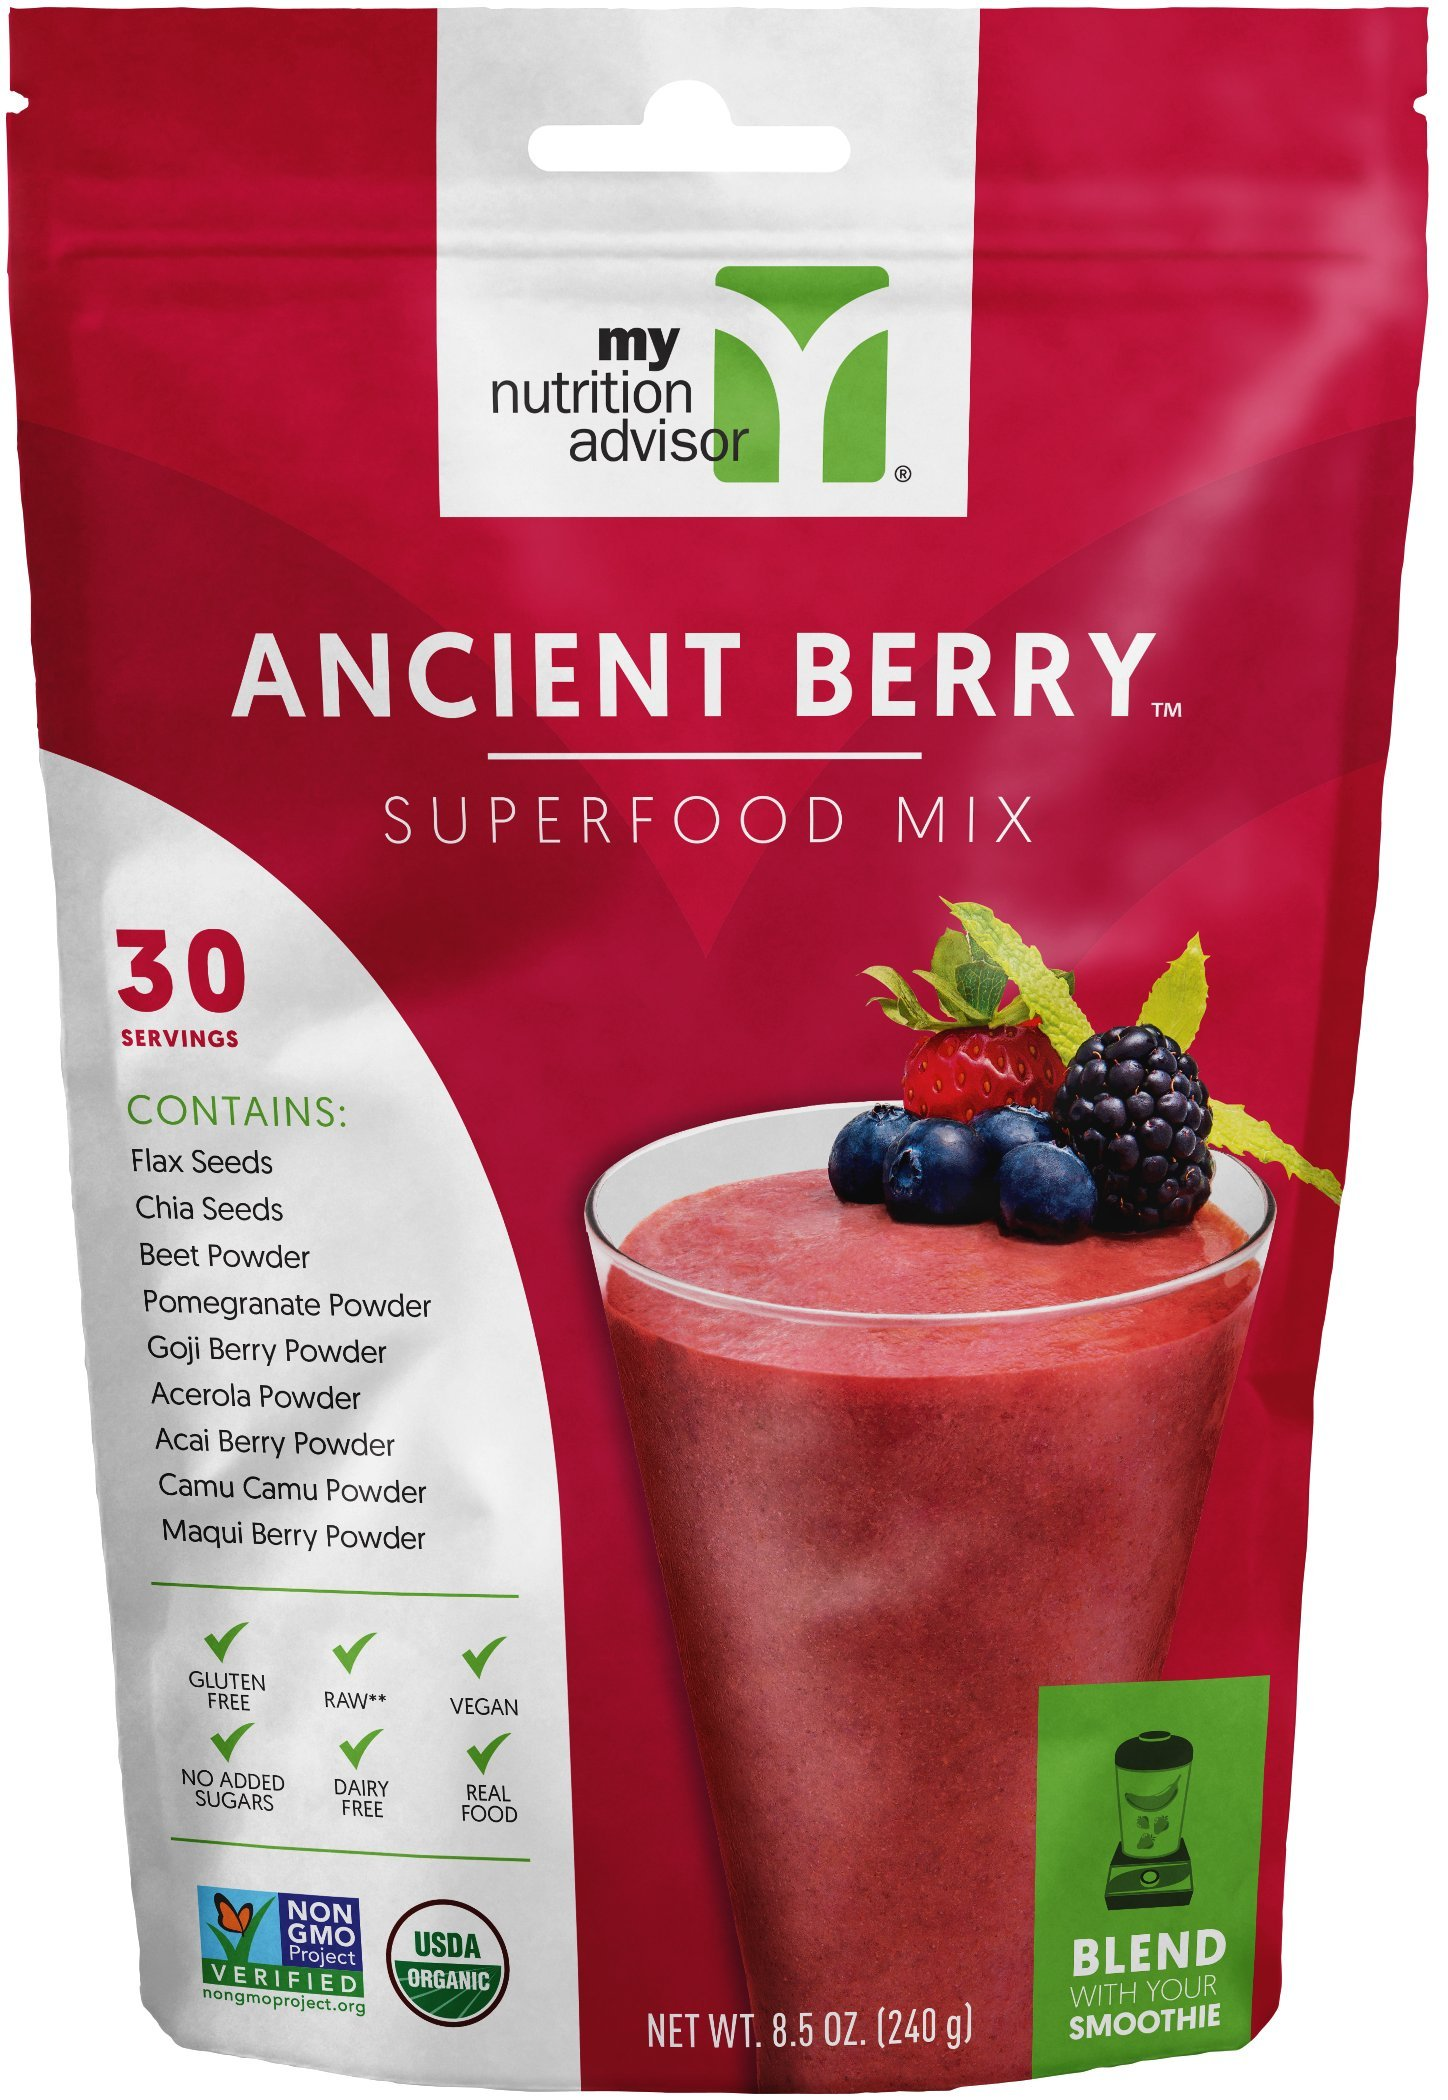 Ancient Berry Superfood Smoothie Mix (Powder) - 30 Servings   My Nutrition Advisor